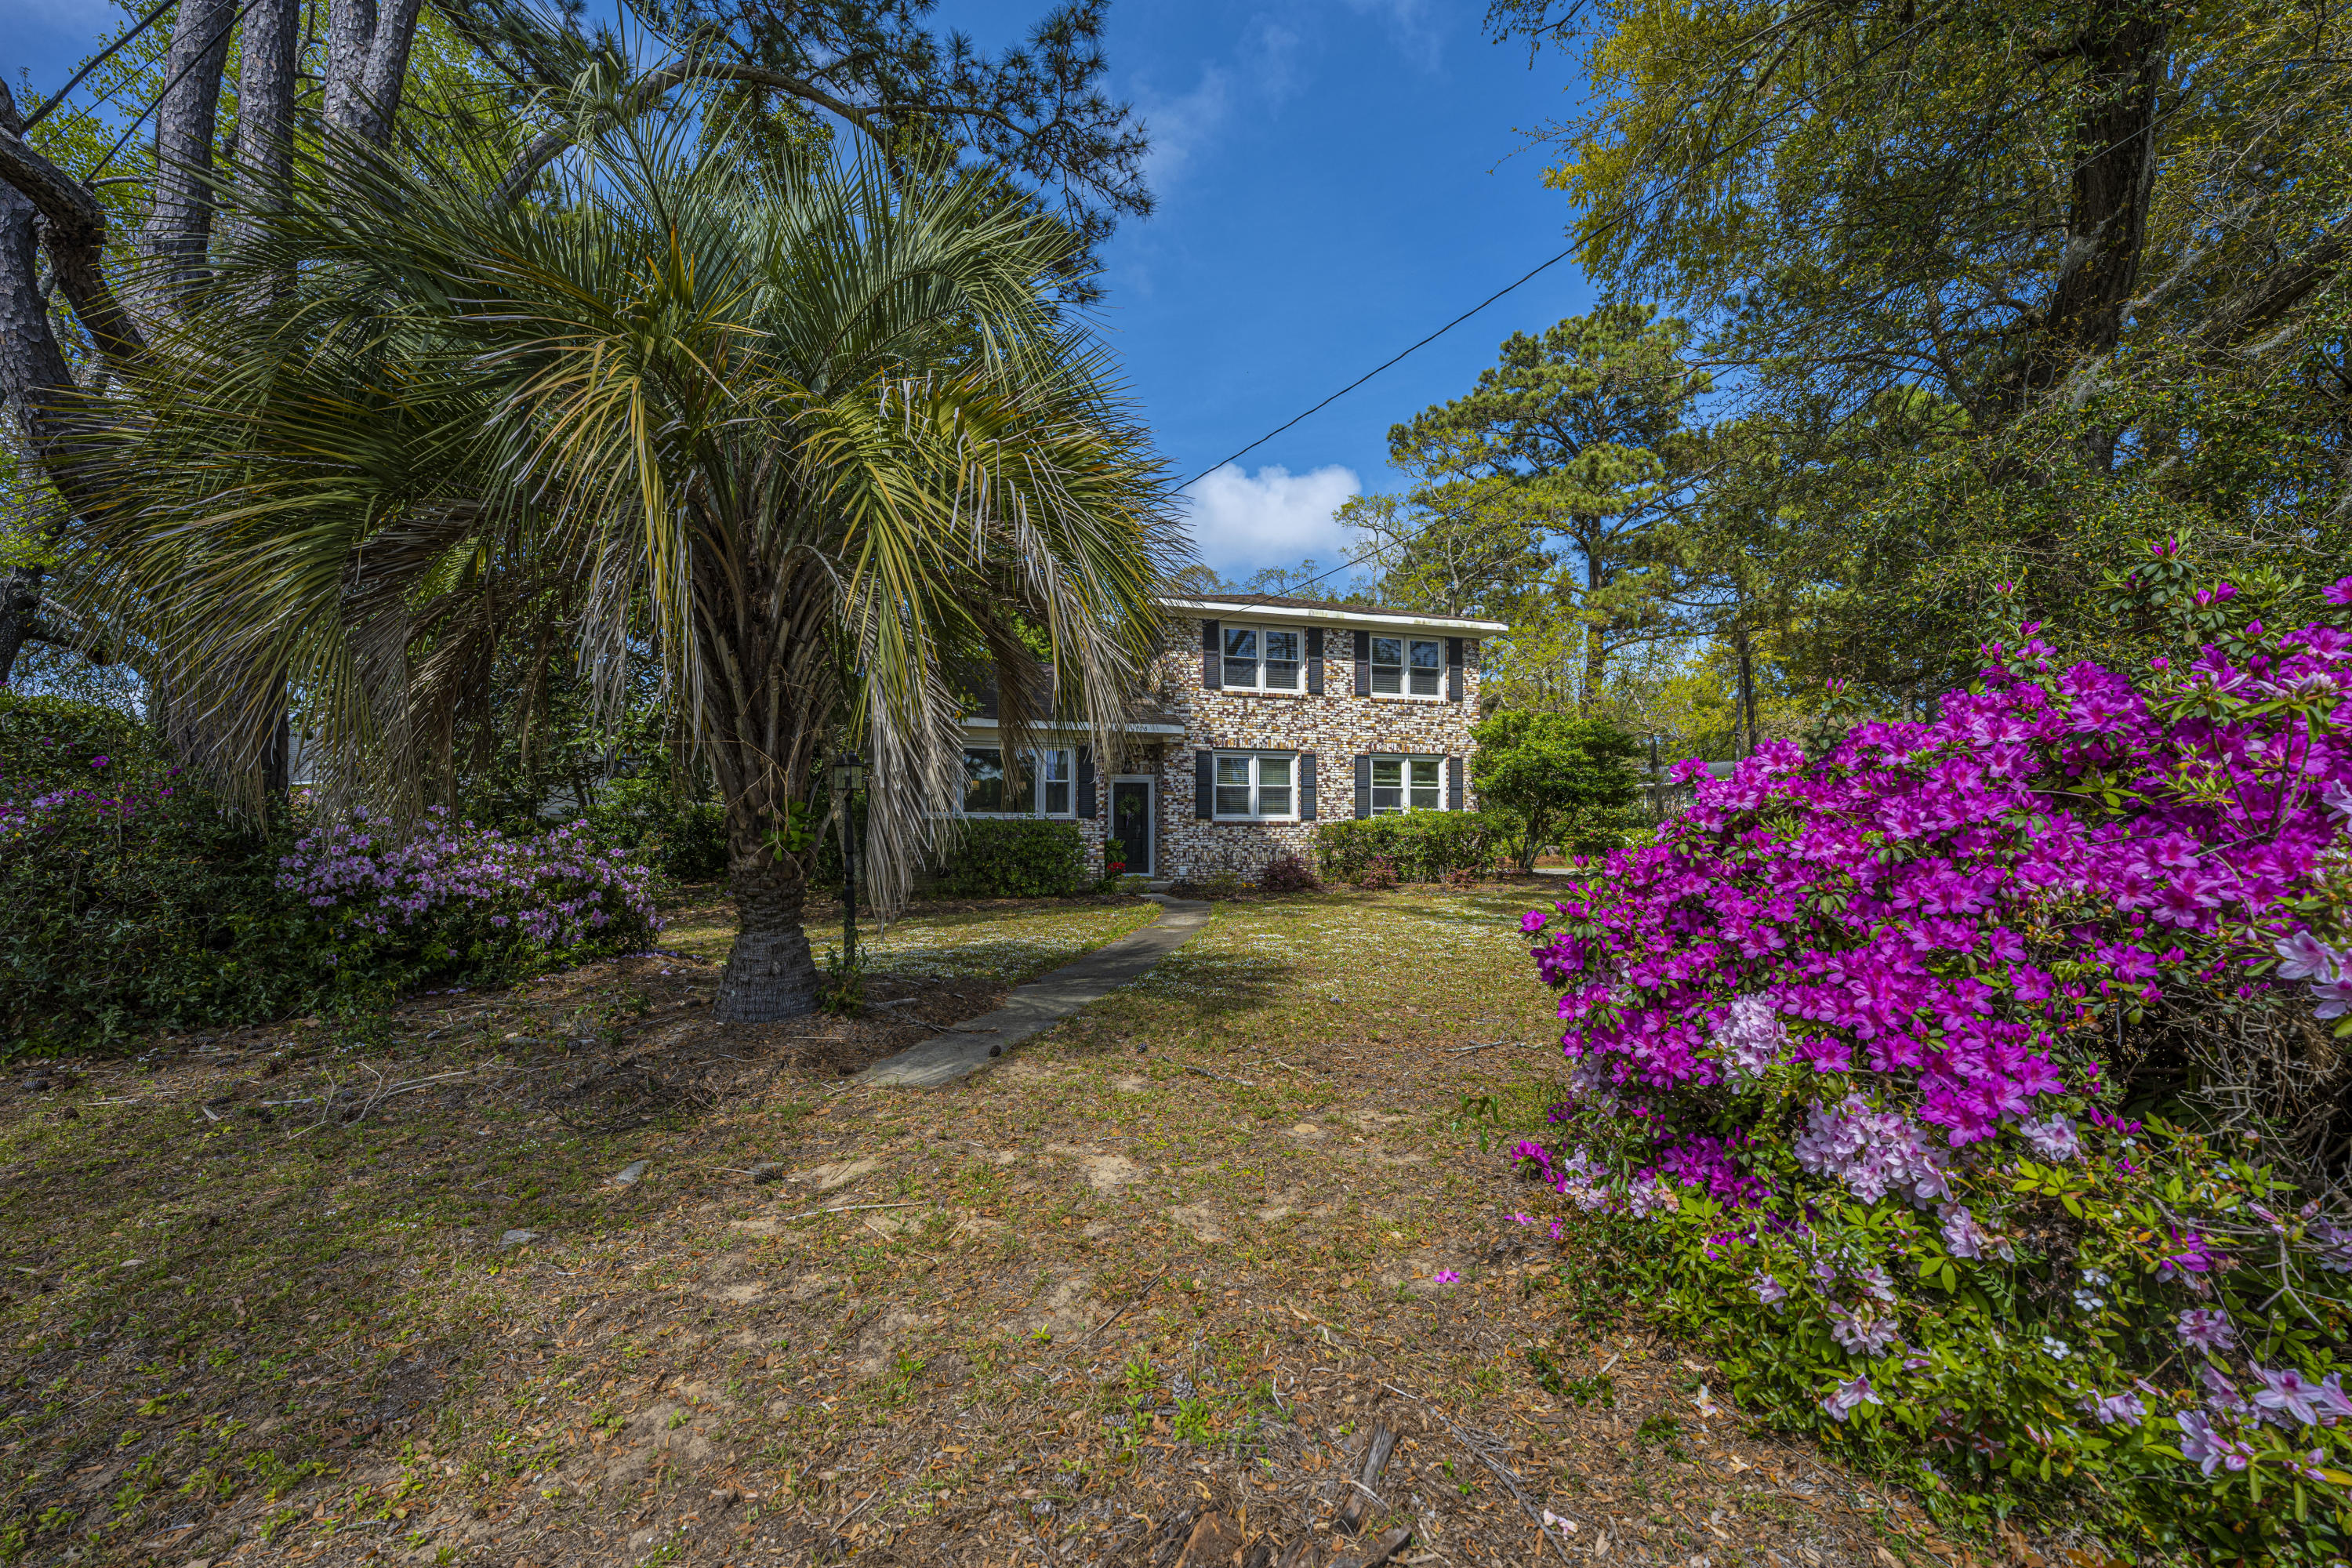 Stiles Point Homes For Sale - 775 Sparrow, Charleston, SC - 28